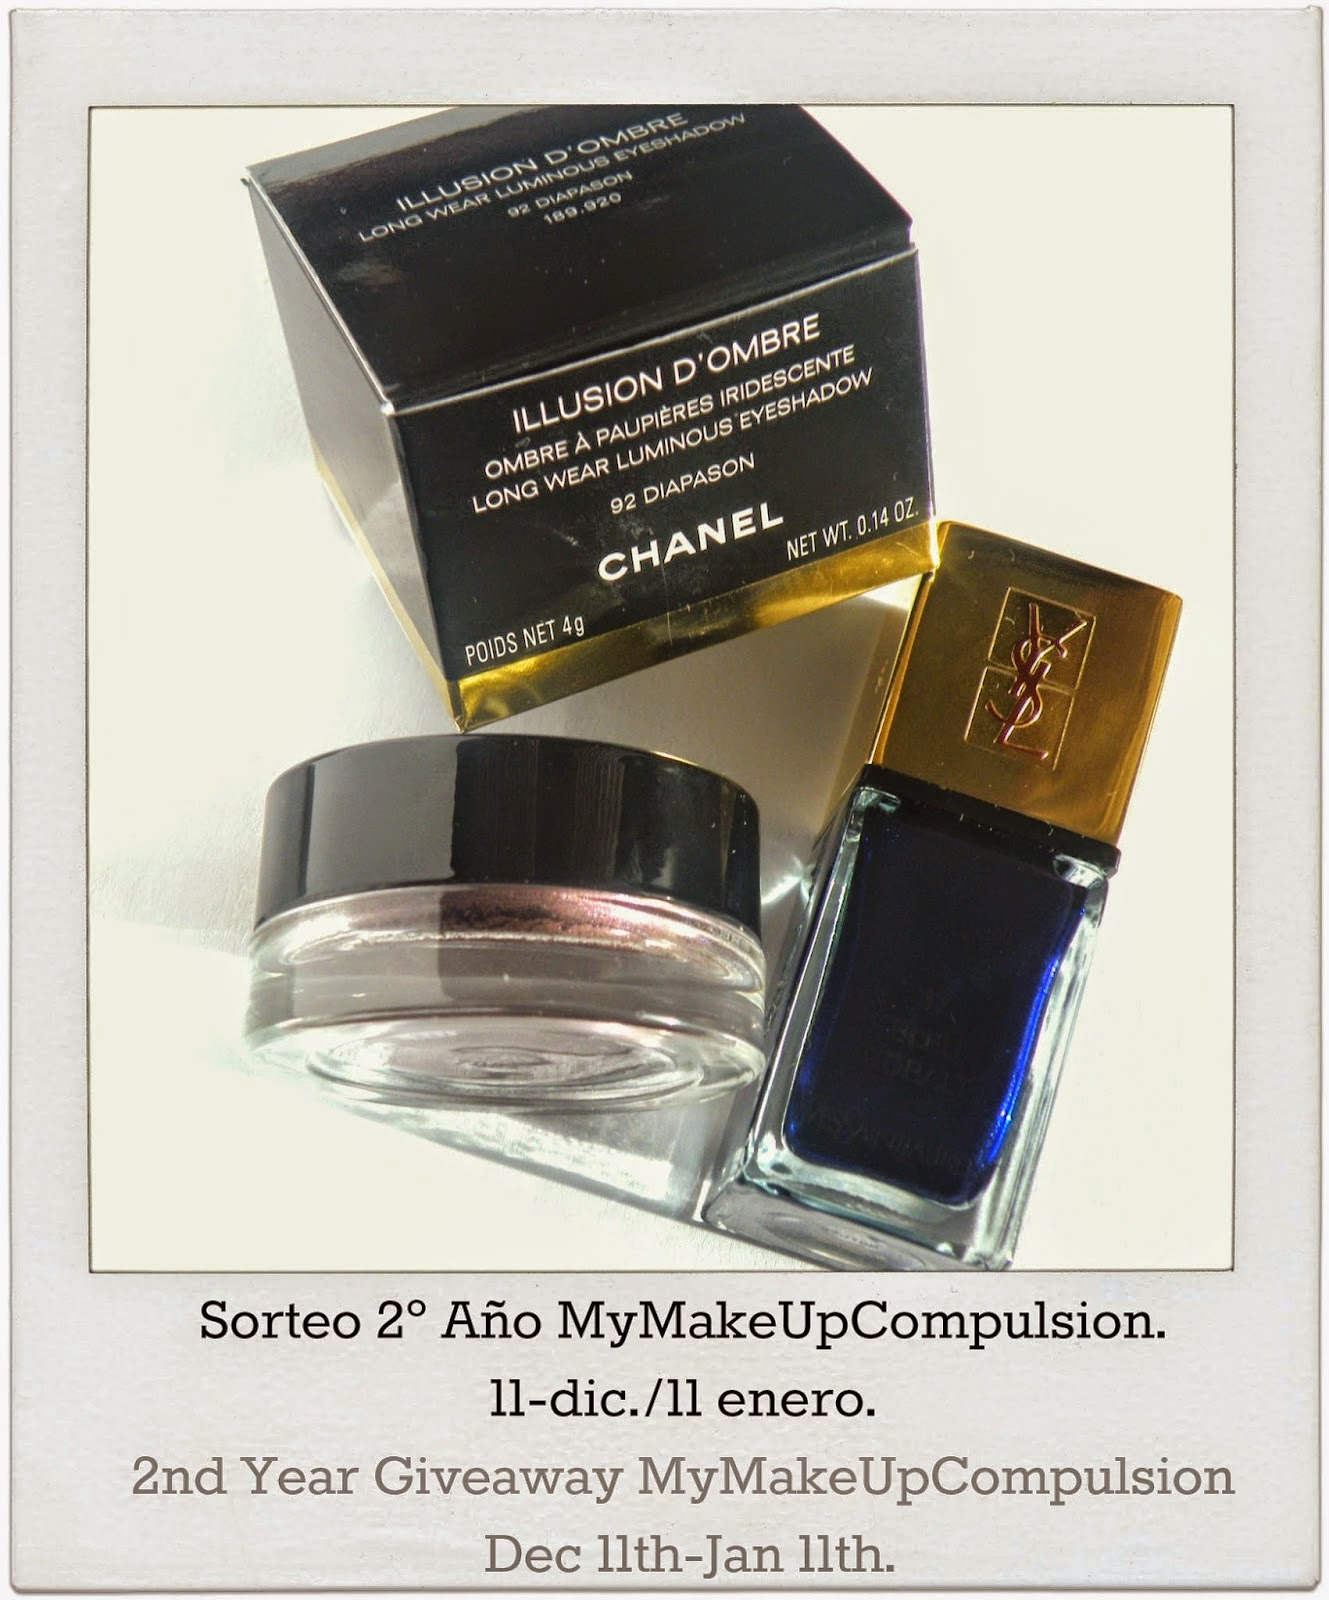 SORTEO EN MY MAKE UP COMPULSION